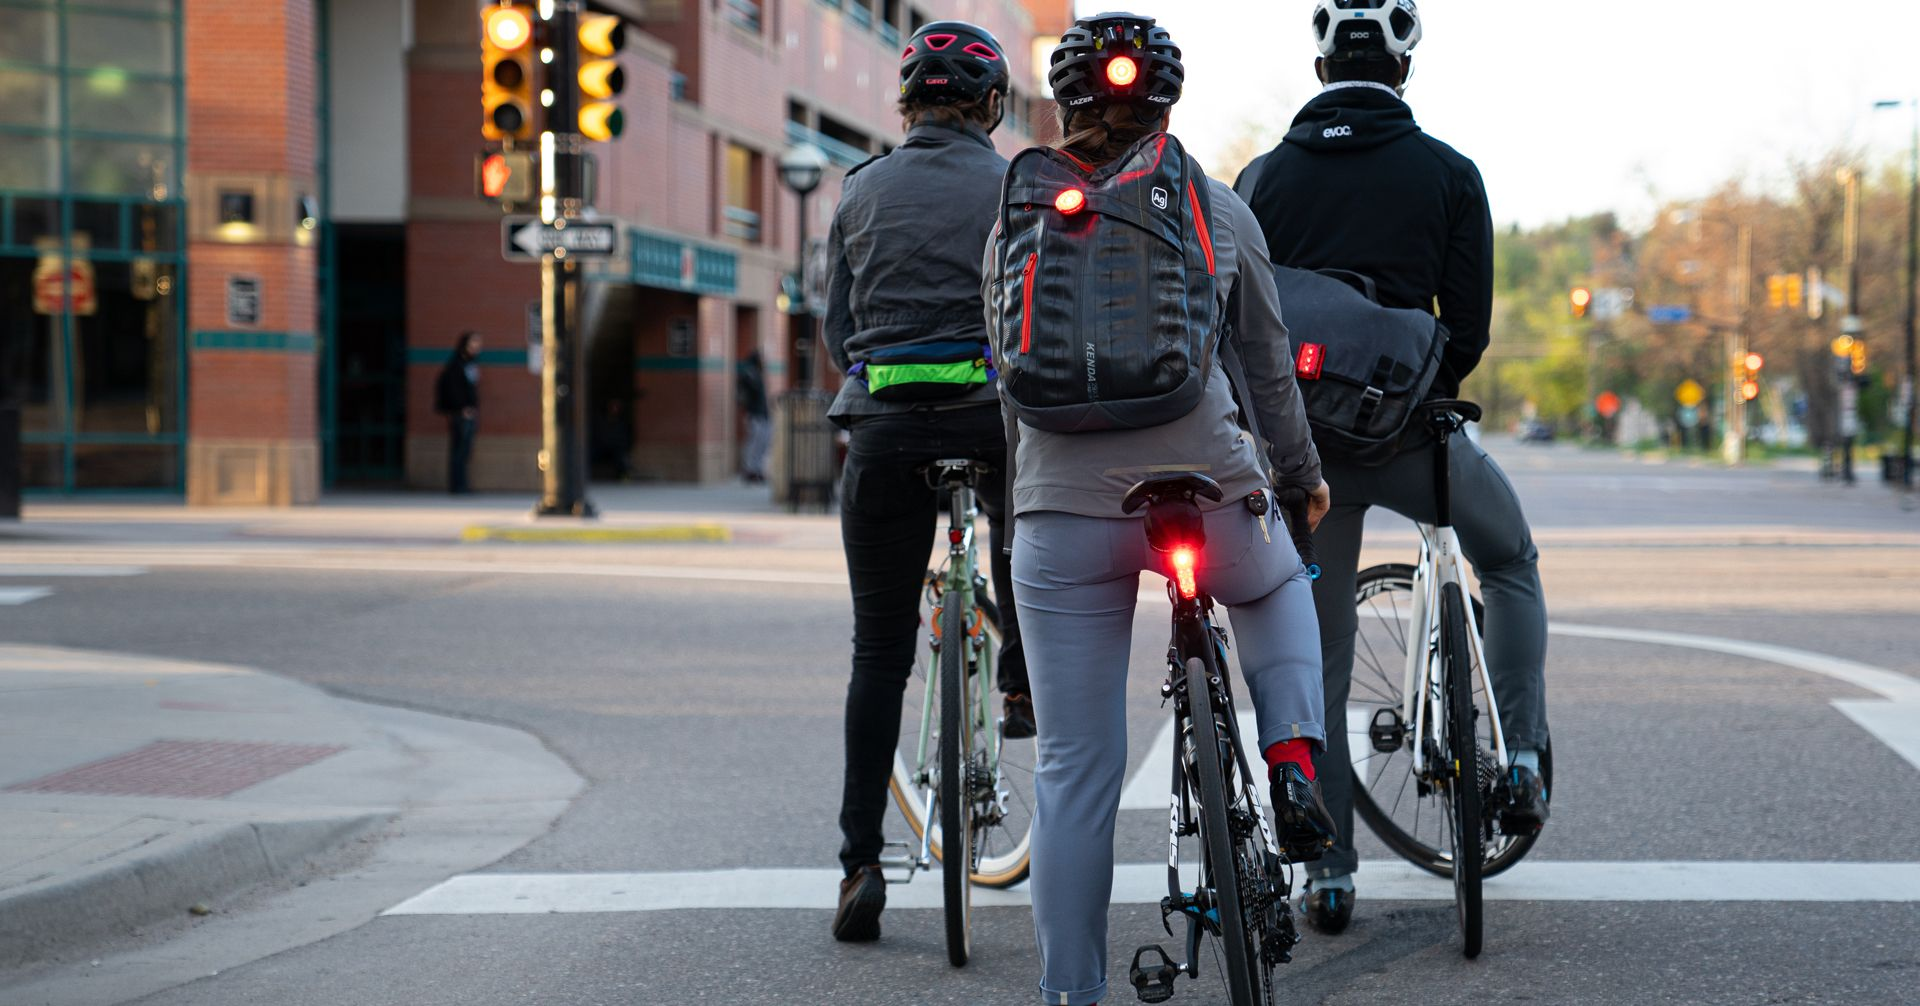 A group of cyclists at the traffic lights with rear bike lights on